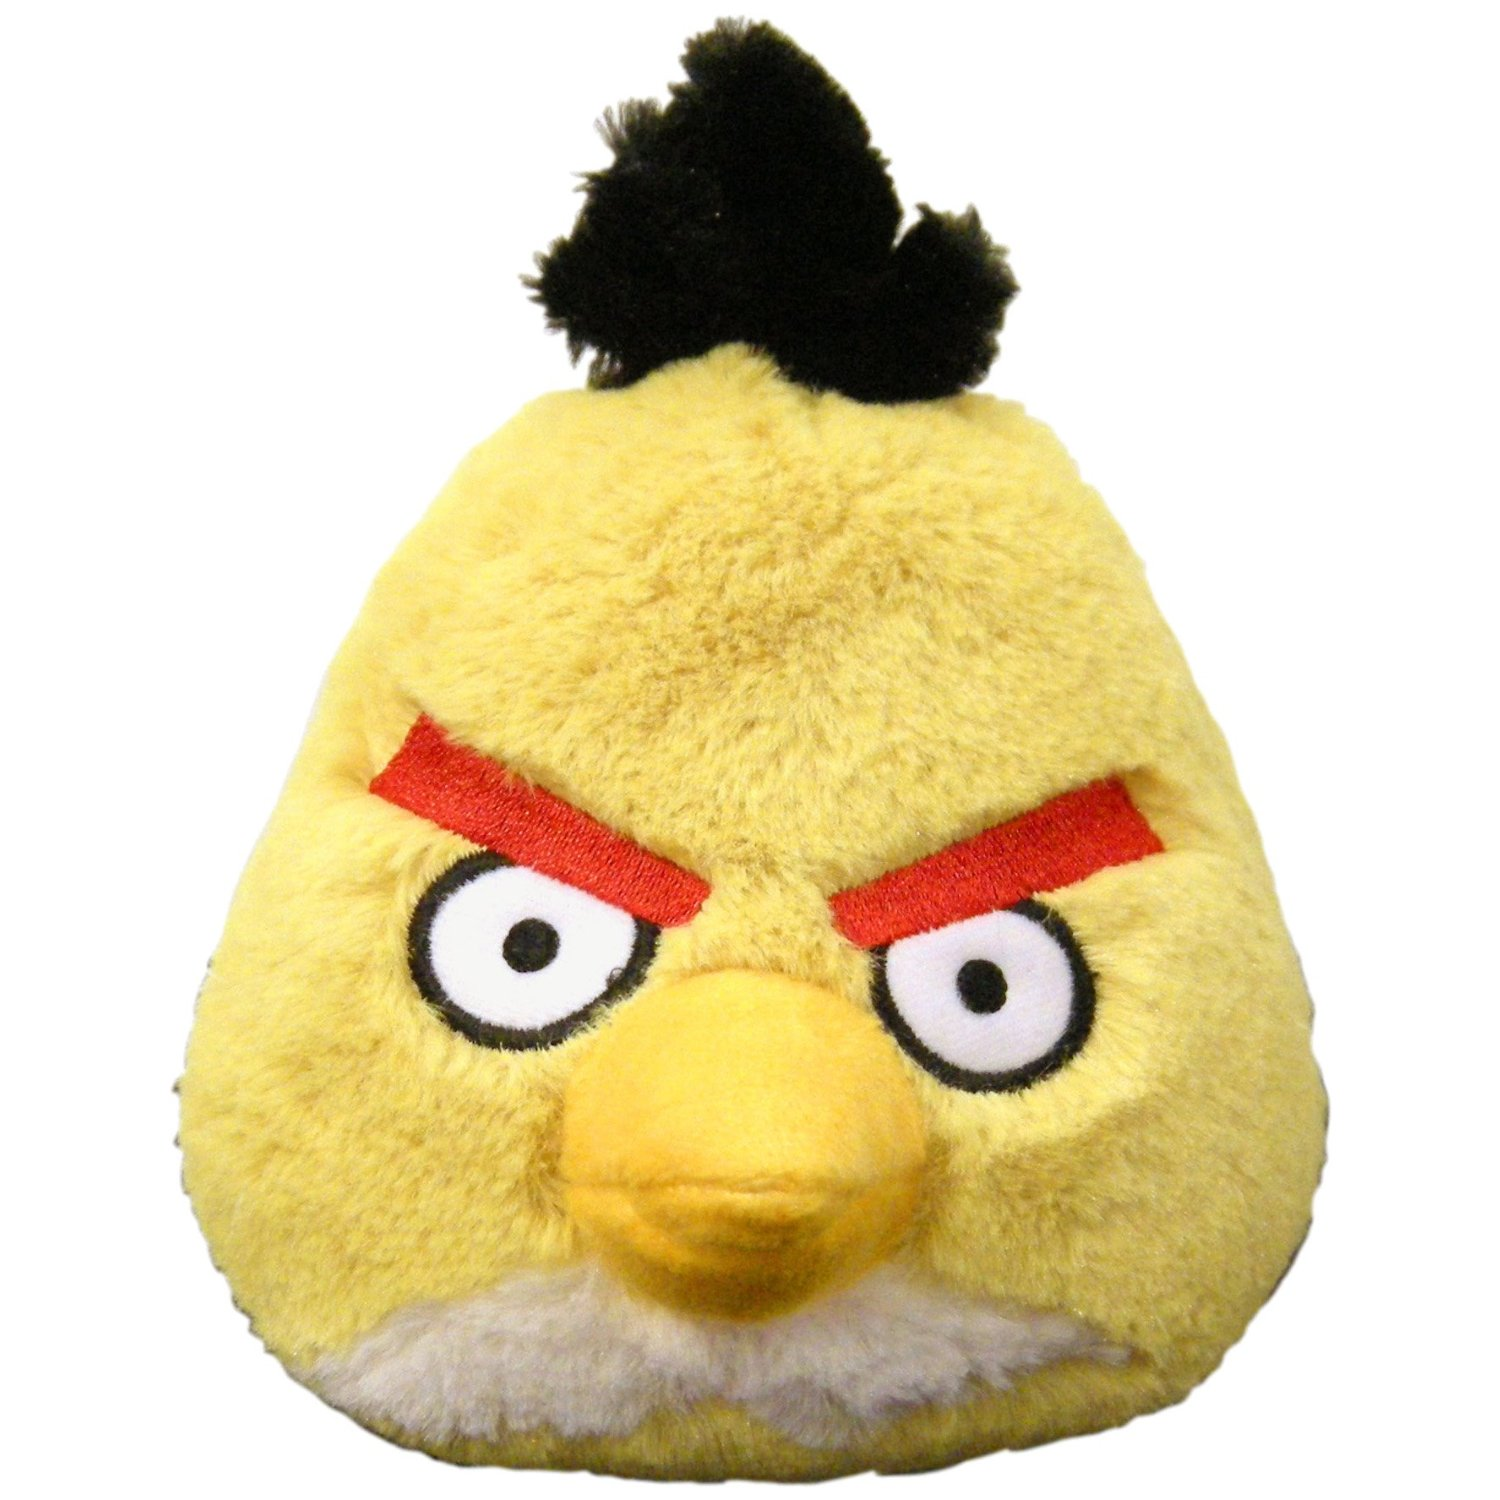 Angry Birds Toys With Sound : Angry birds quot plush yellow bird with sound gift ideas